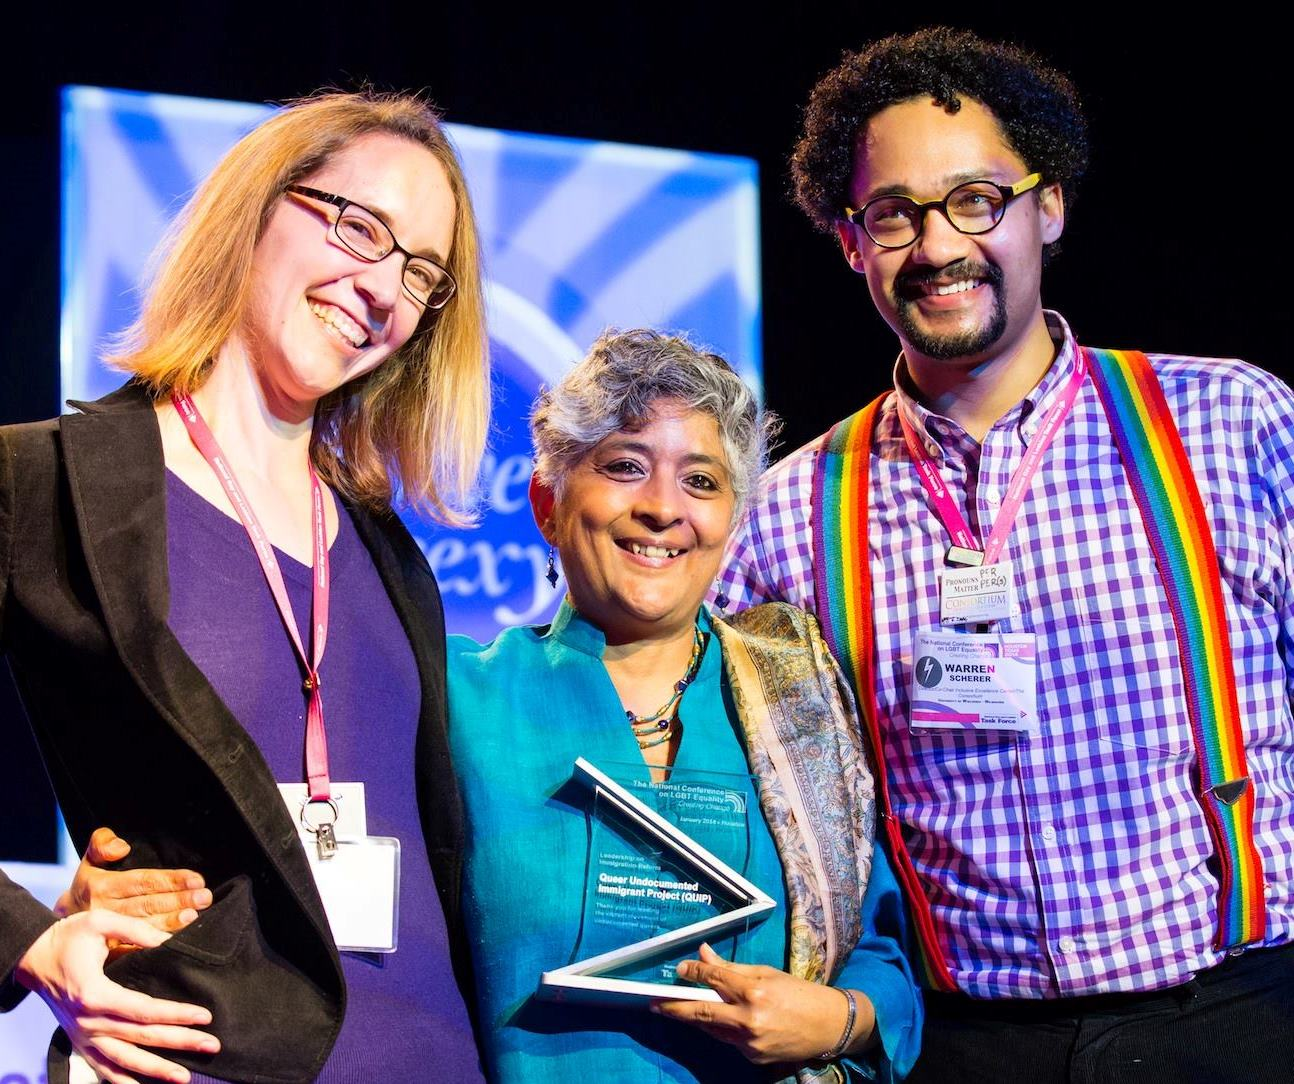 Intersectionality Award Winner Shiva Subbaraman